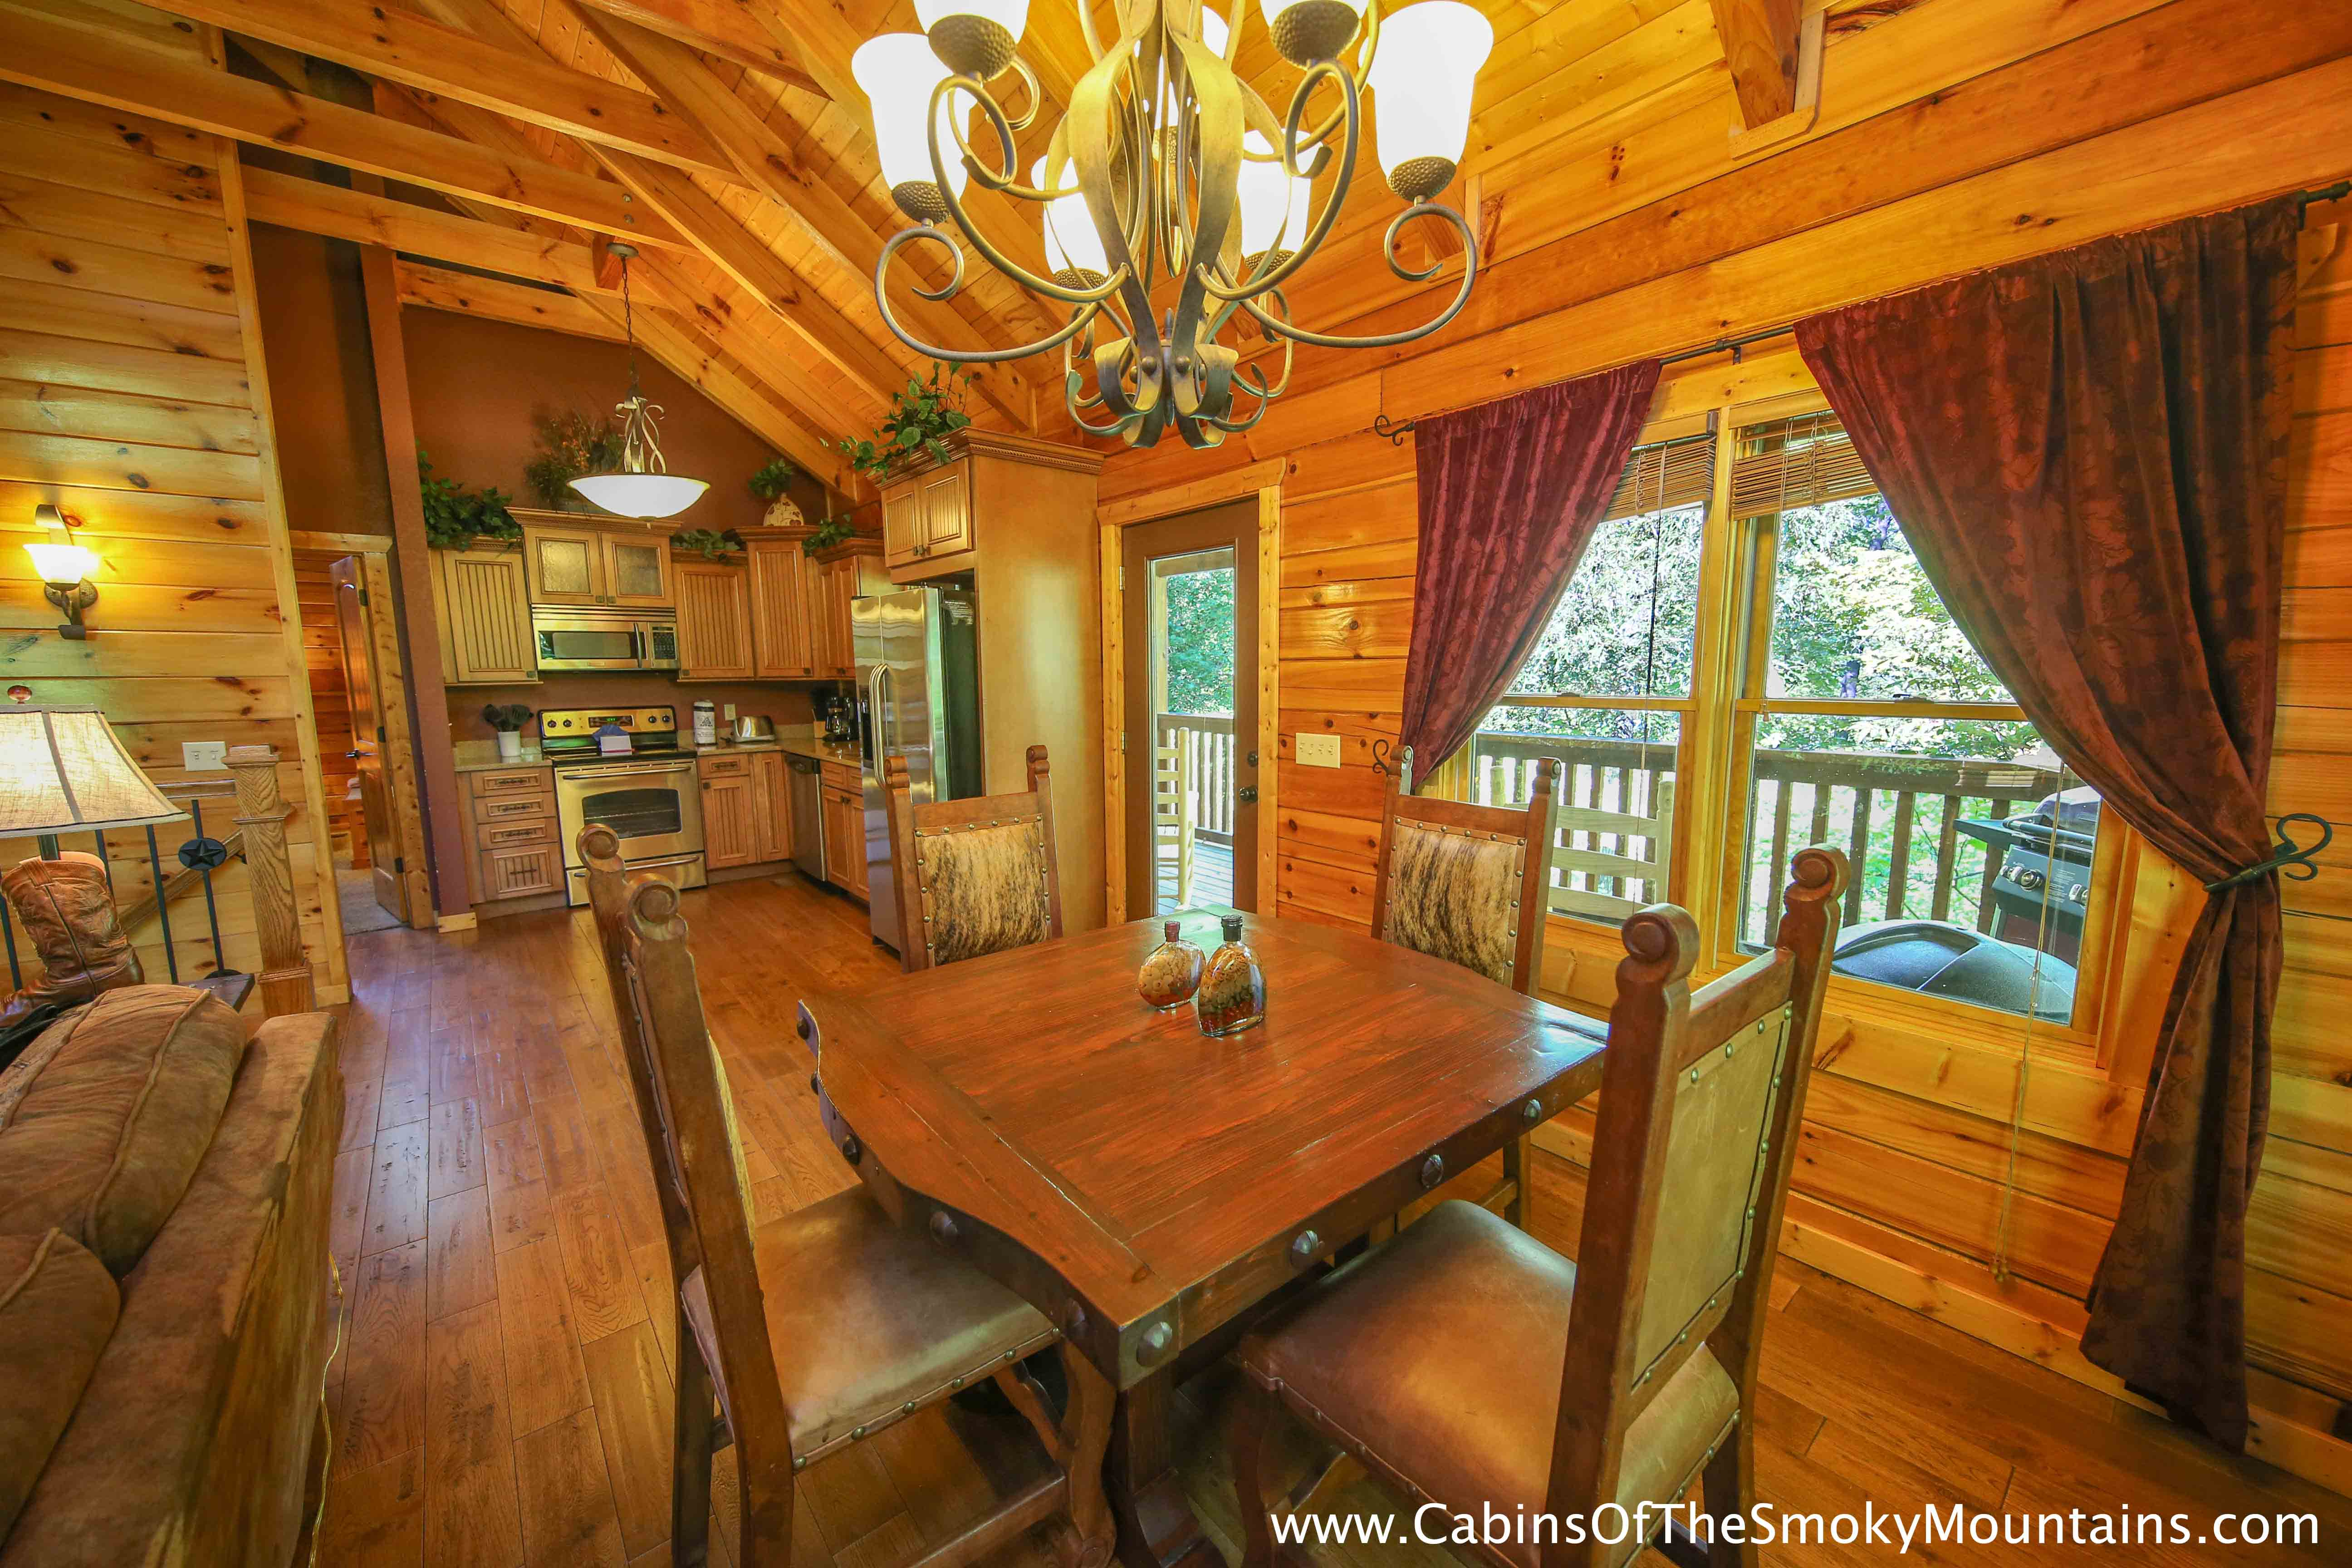 Pigeon forge cabin wild wild west 2 bedroom sleeps 6 for 2 bedroom hotels in pigeon forge